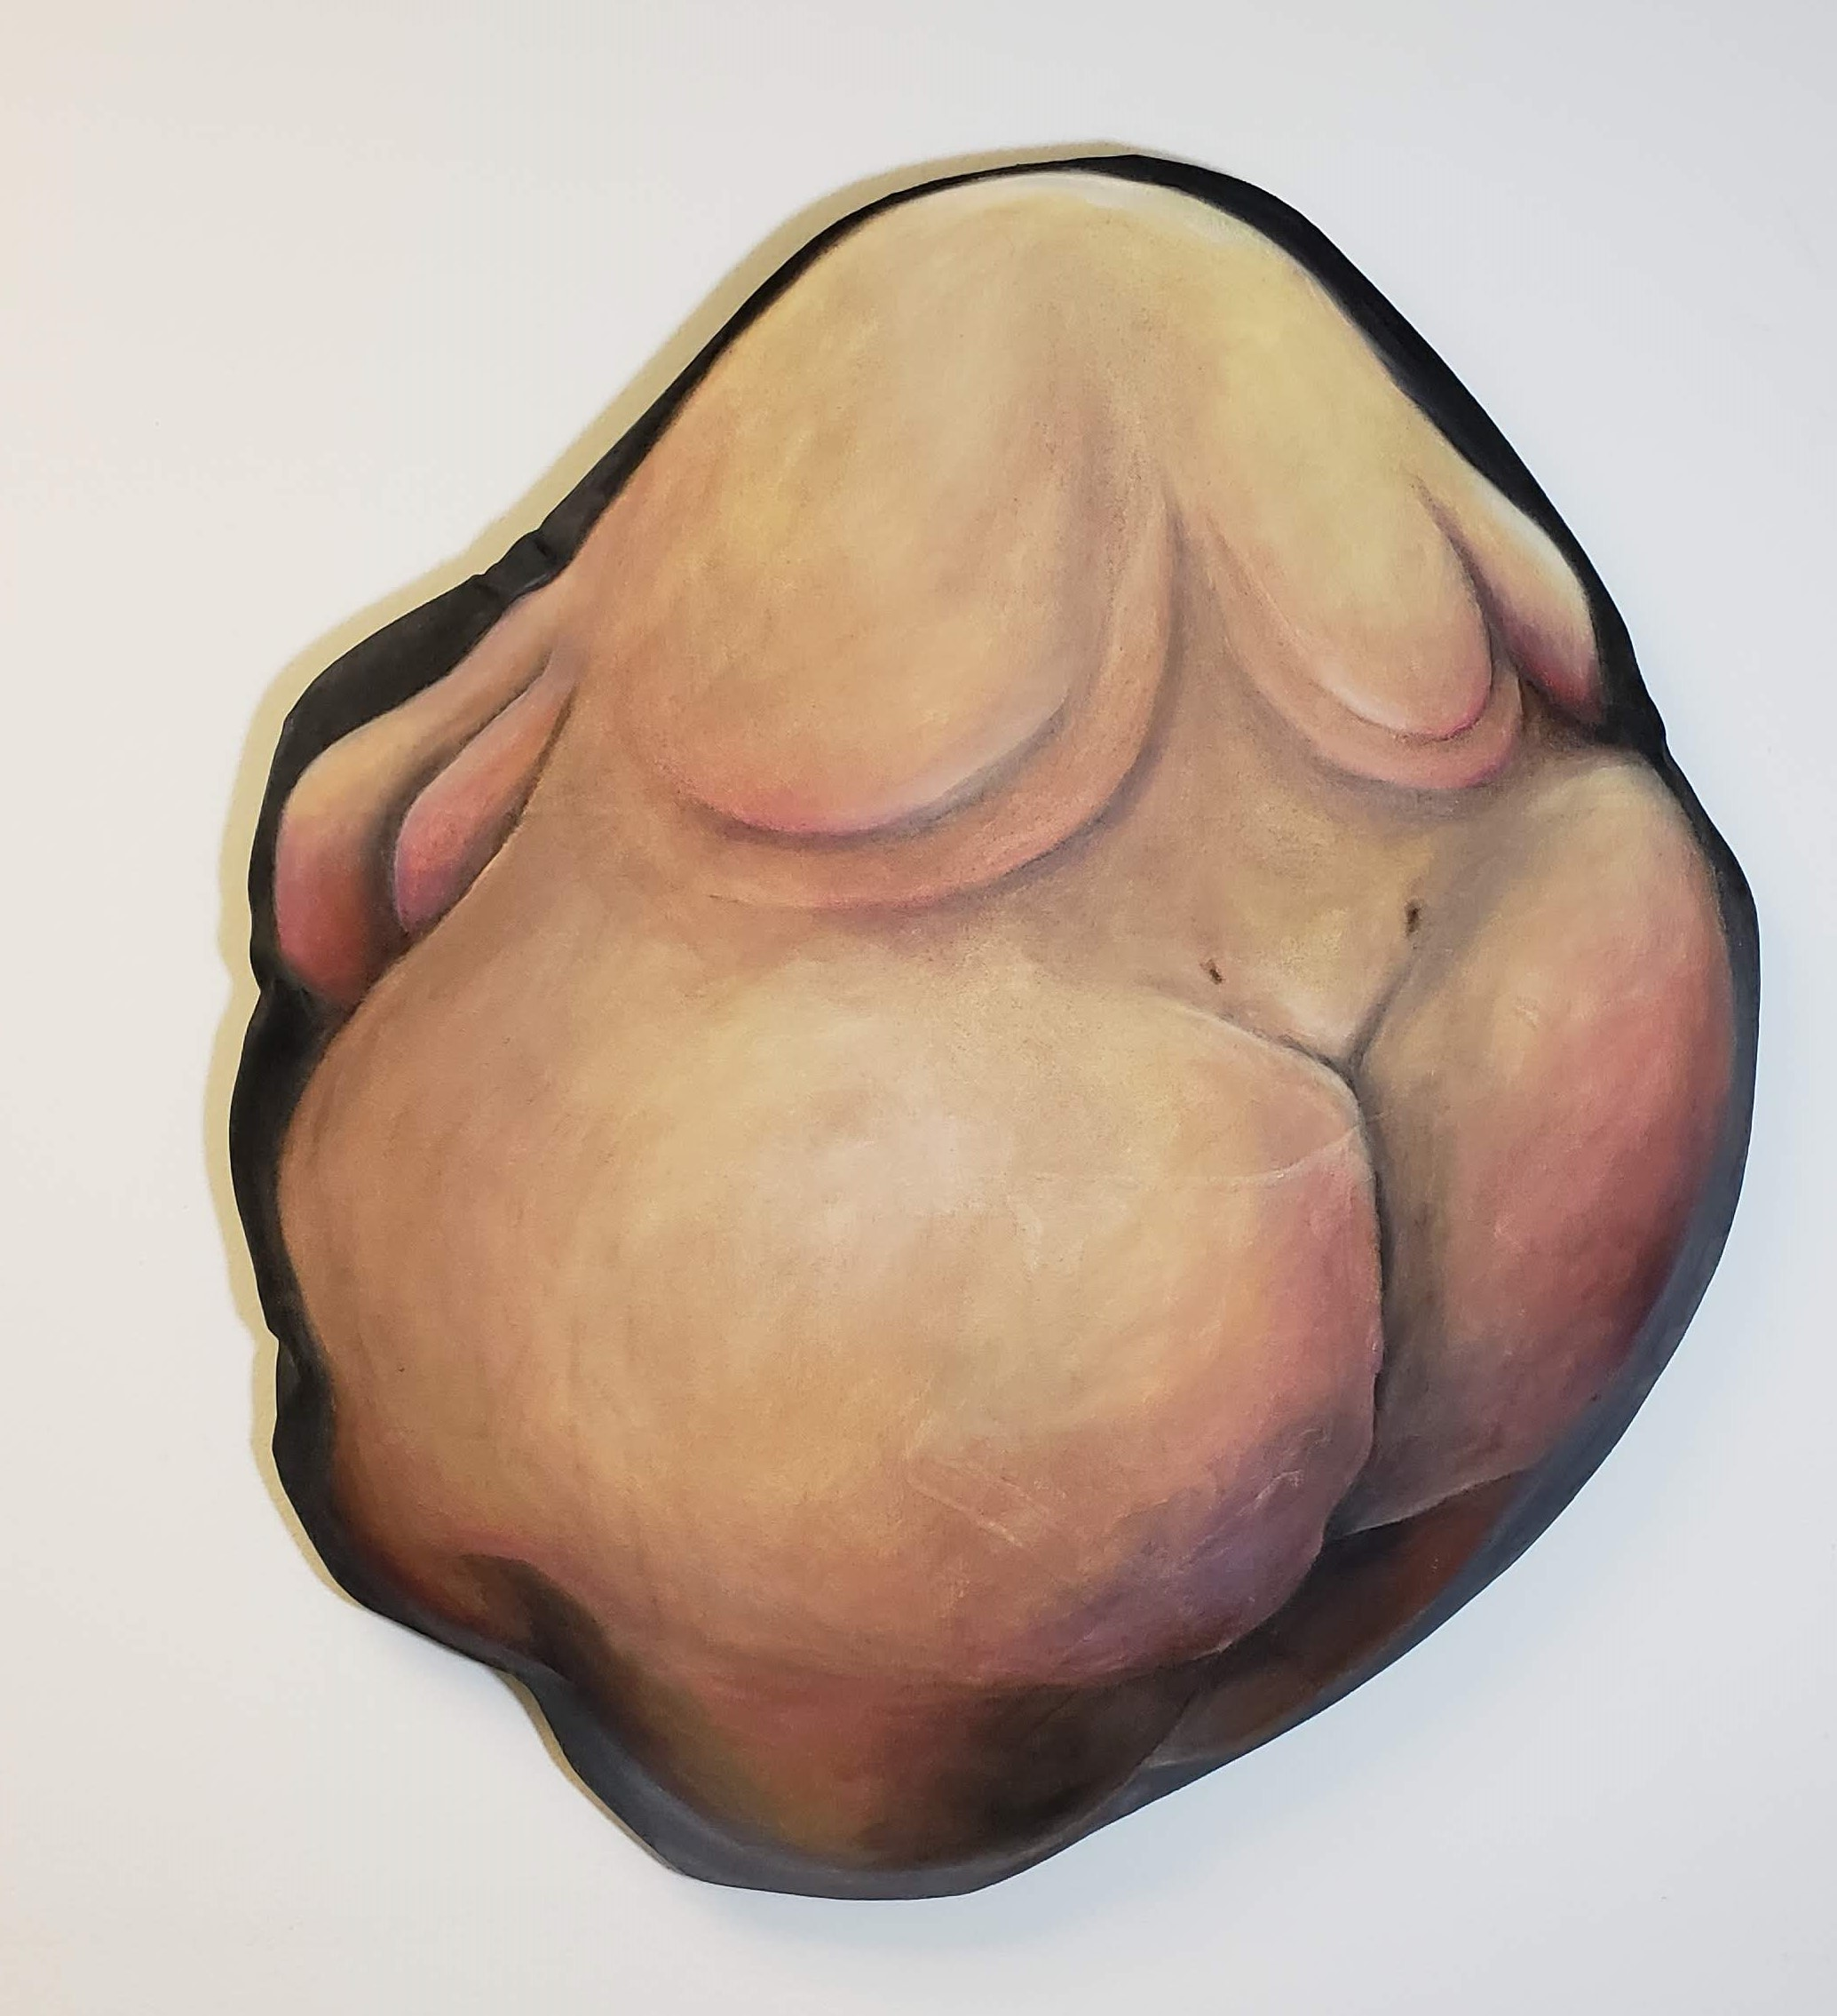 """Blubbly 1"" Oil on stuffed canvas, 24"" by 22"" - Currently for sale at Prove Collective, Duluth, MN"